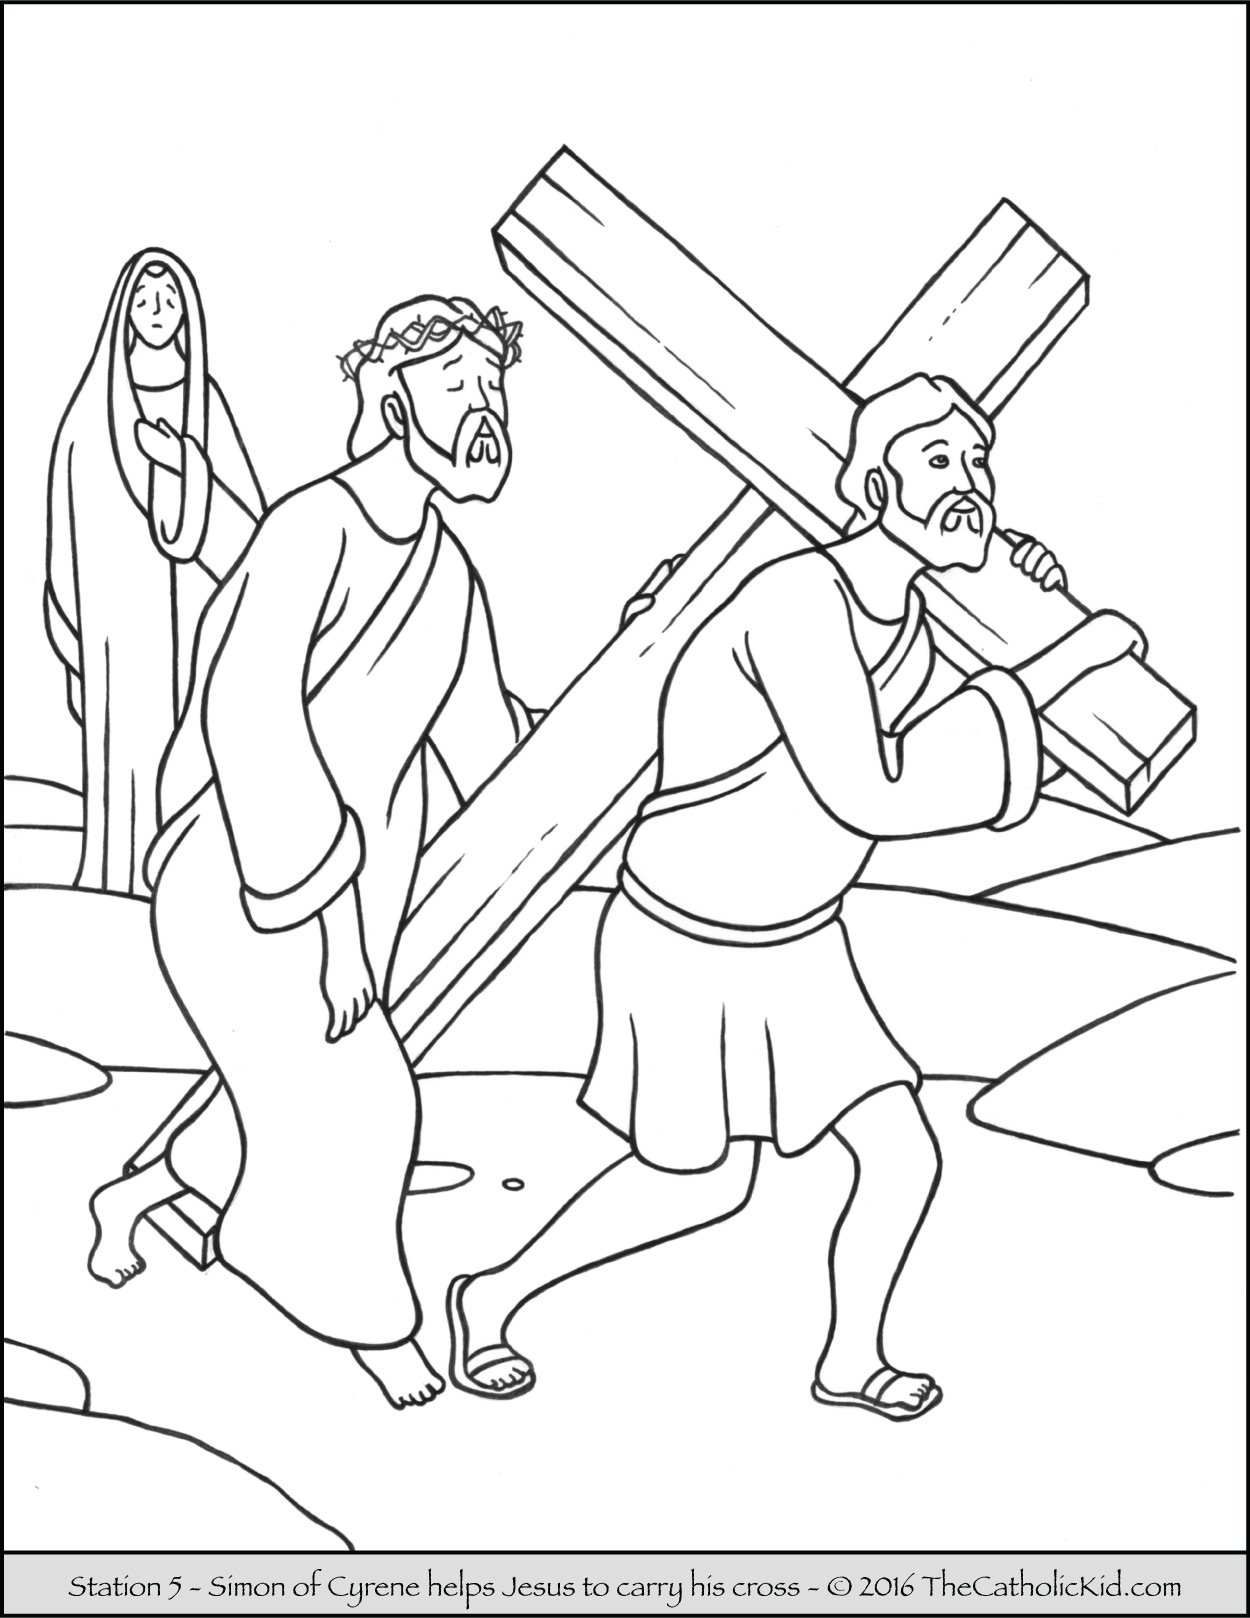 Stations Of The Cross Coloring Pages Delectable Stations Of The Cross Coloring Pages  The Catholic Kid Design Decoration